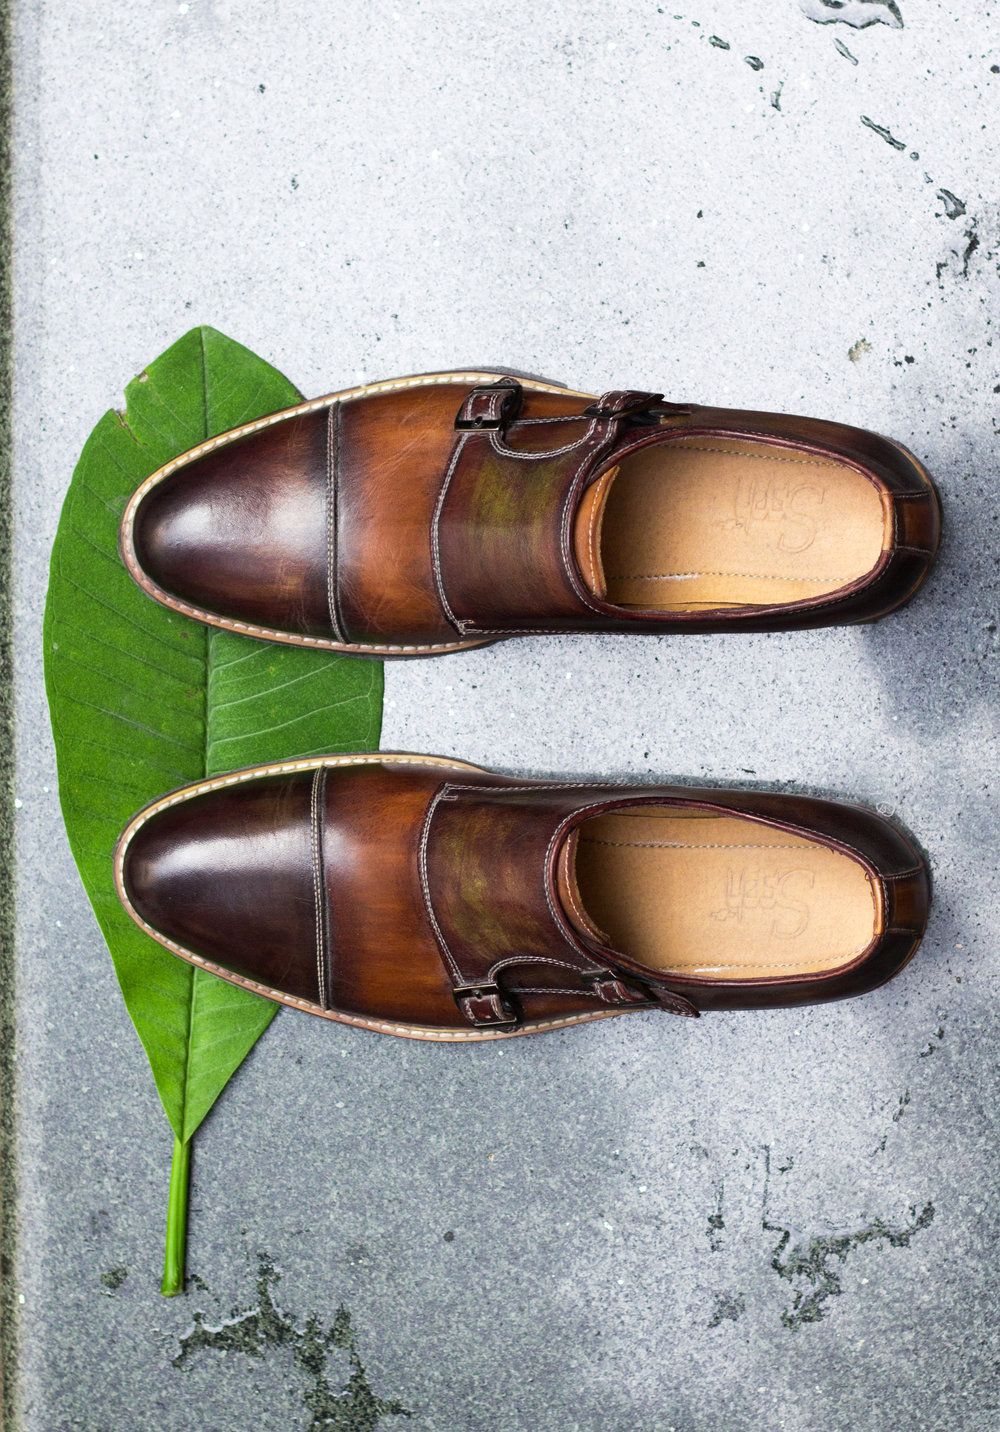 #7 The brown monkstrap  - The monkstrap is a classical shoe, more formal than a derby but less formal than a full oxford. Sartorial boldness, modernity, and fashion forwardness.